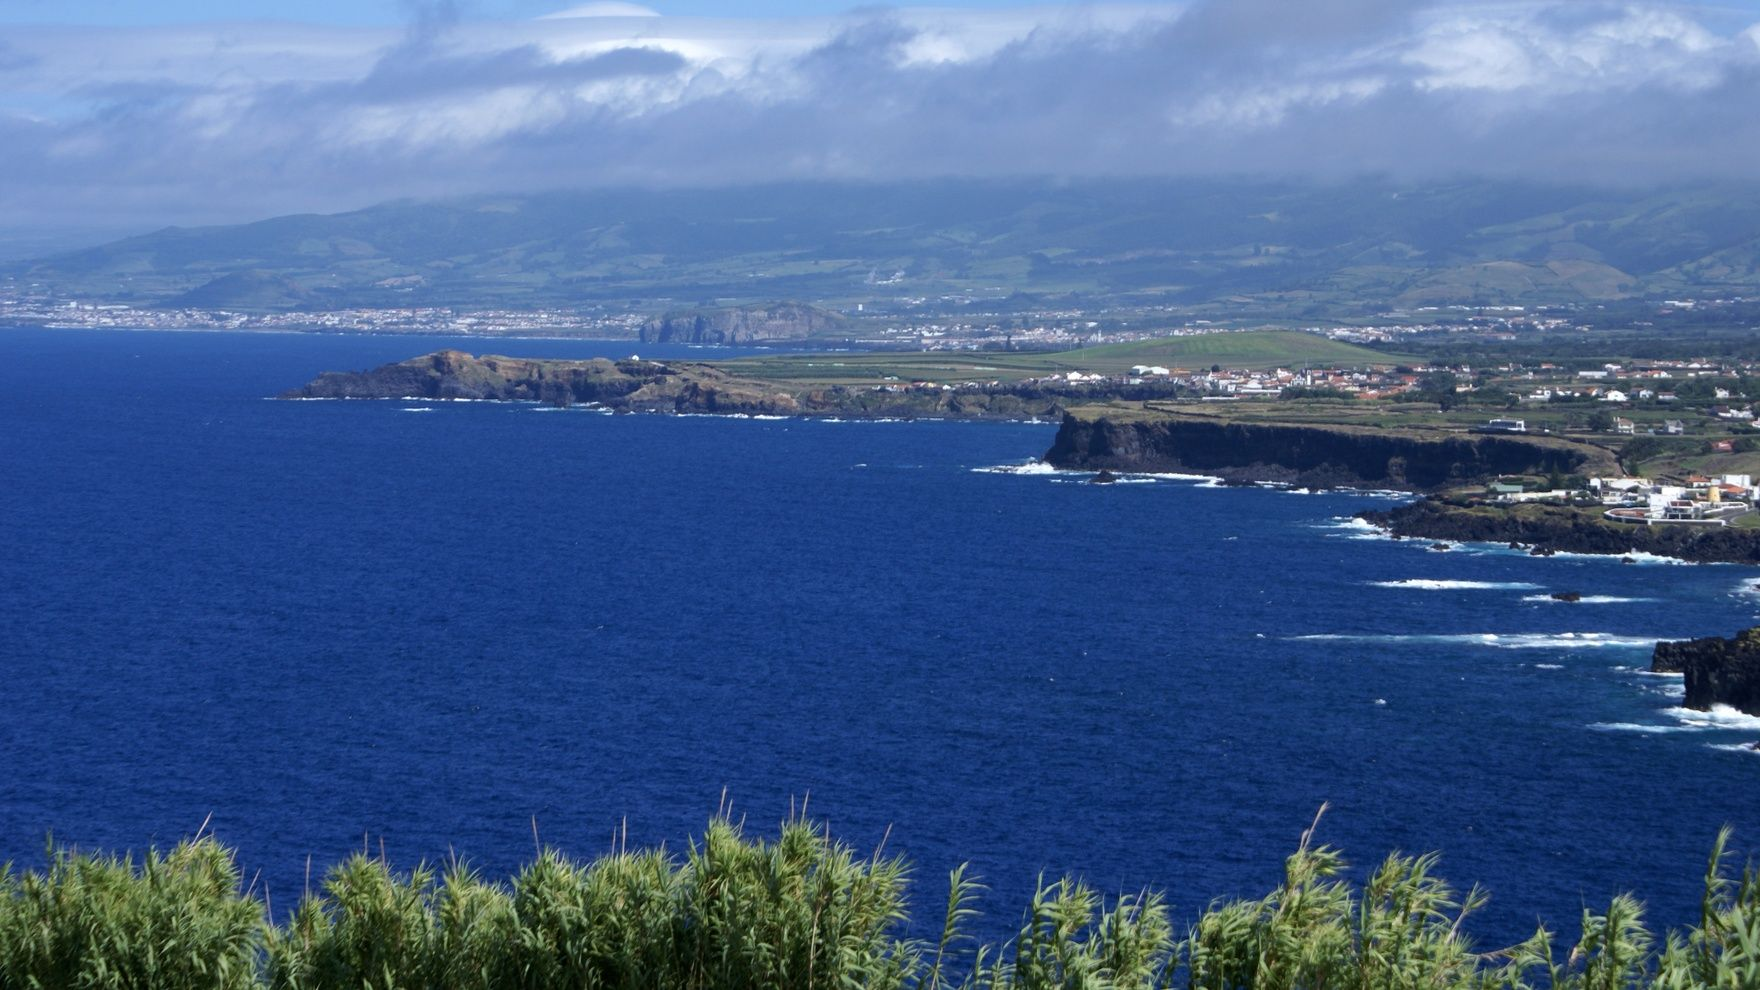 A voyage around the Azores